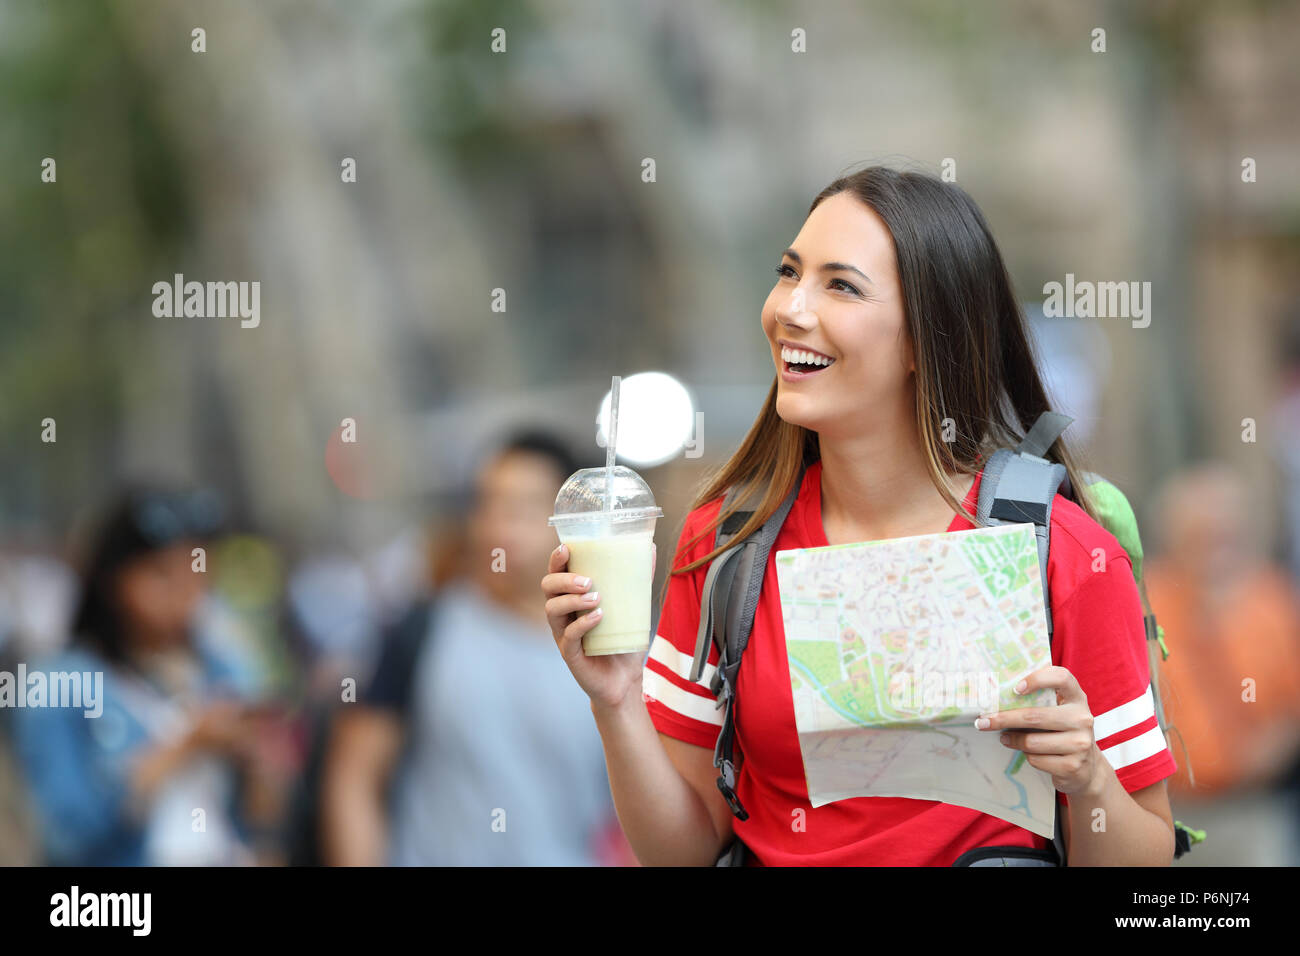 Happy teen tourist sightseeing holding a paper map in the street - Stock Image